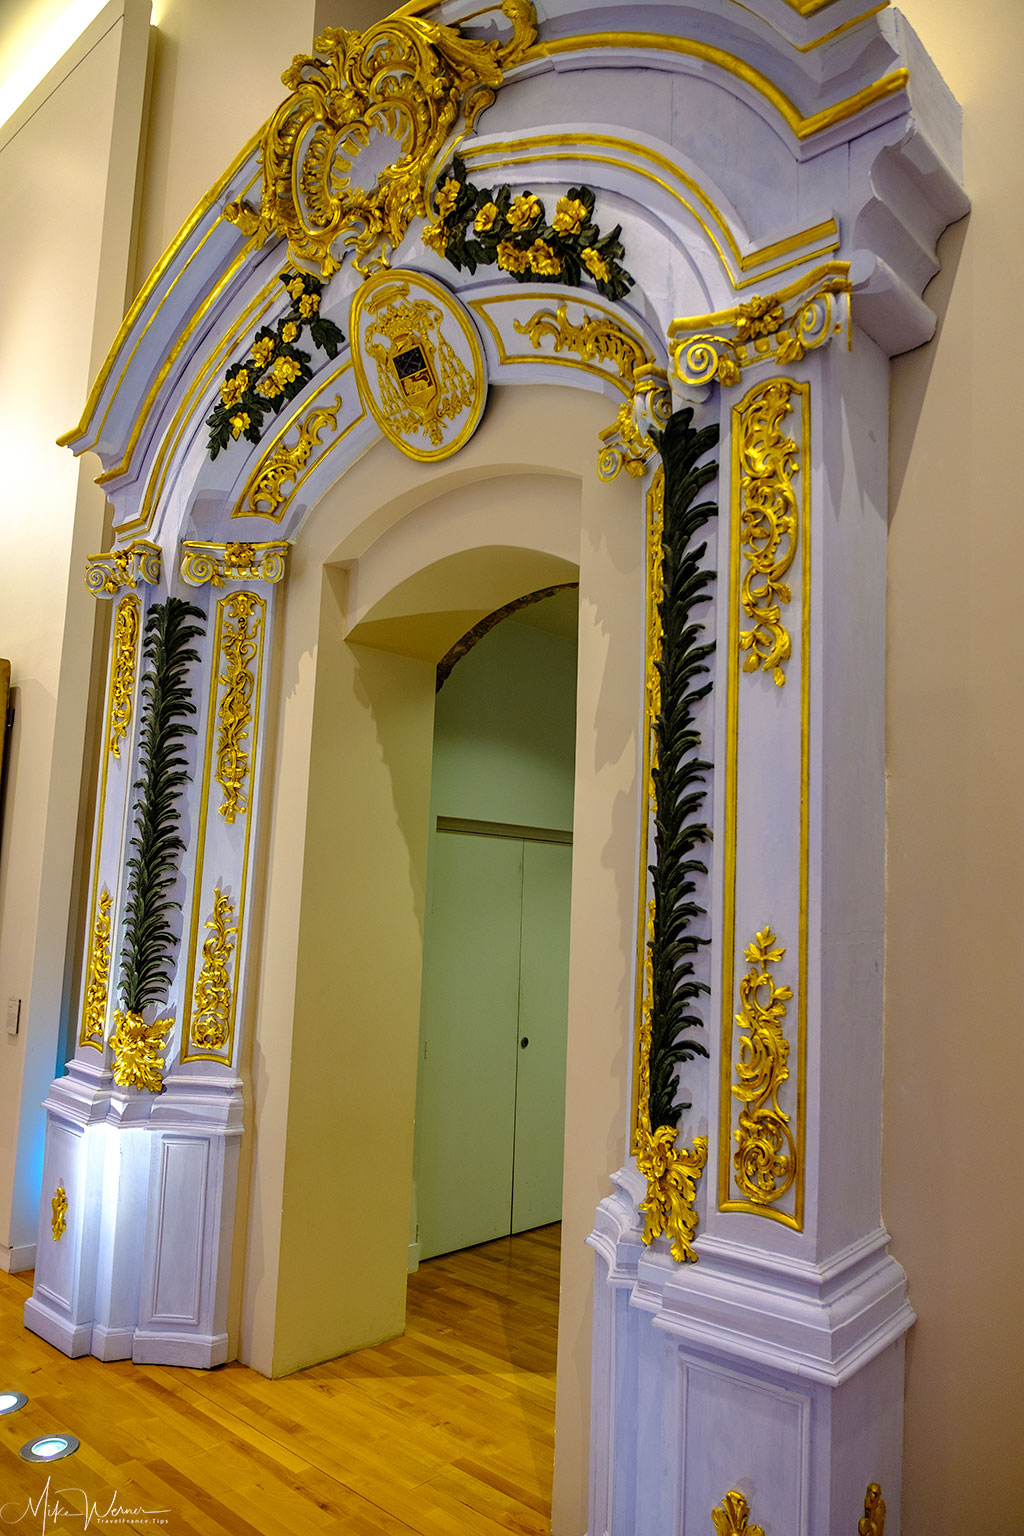 Entrance to former Bishop private chapel in the Valence museum of archaeology and art building